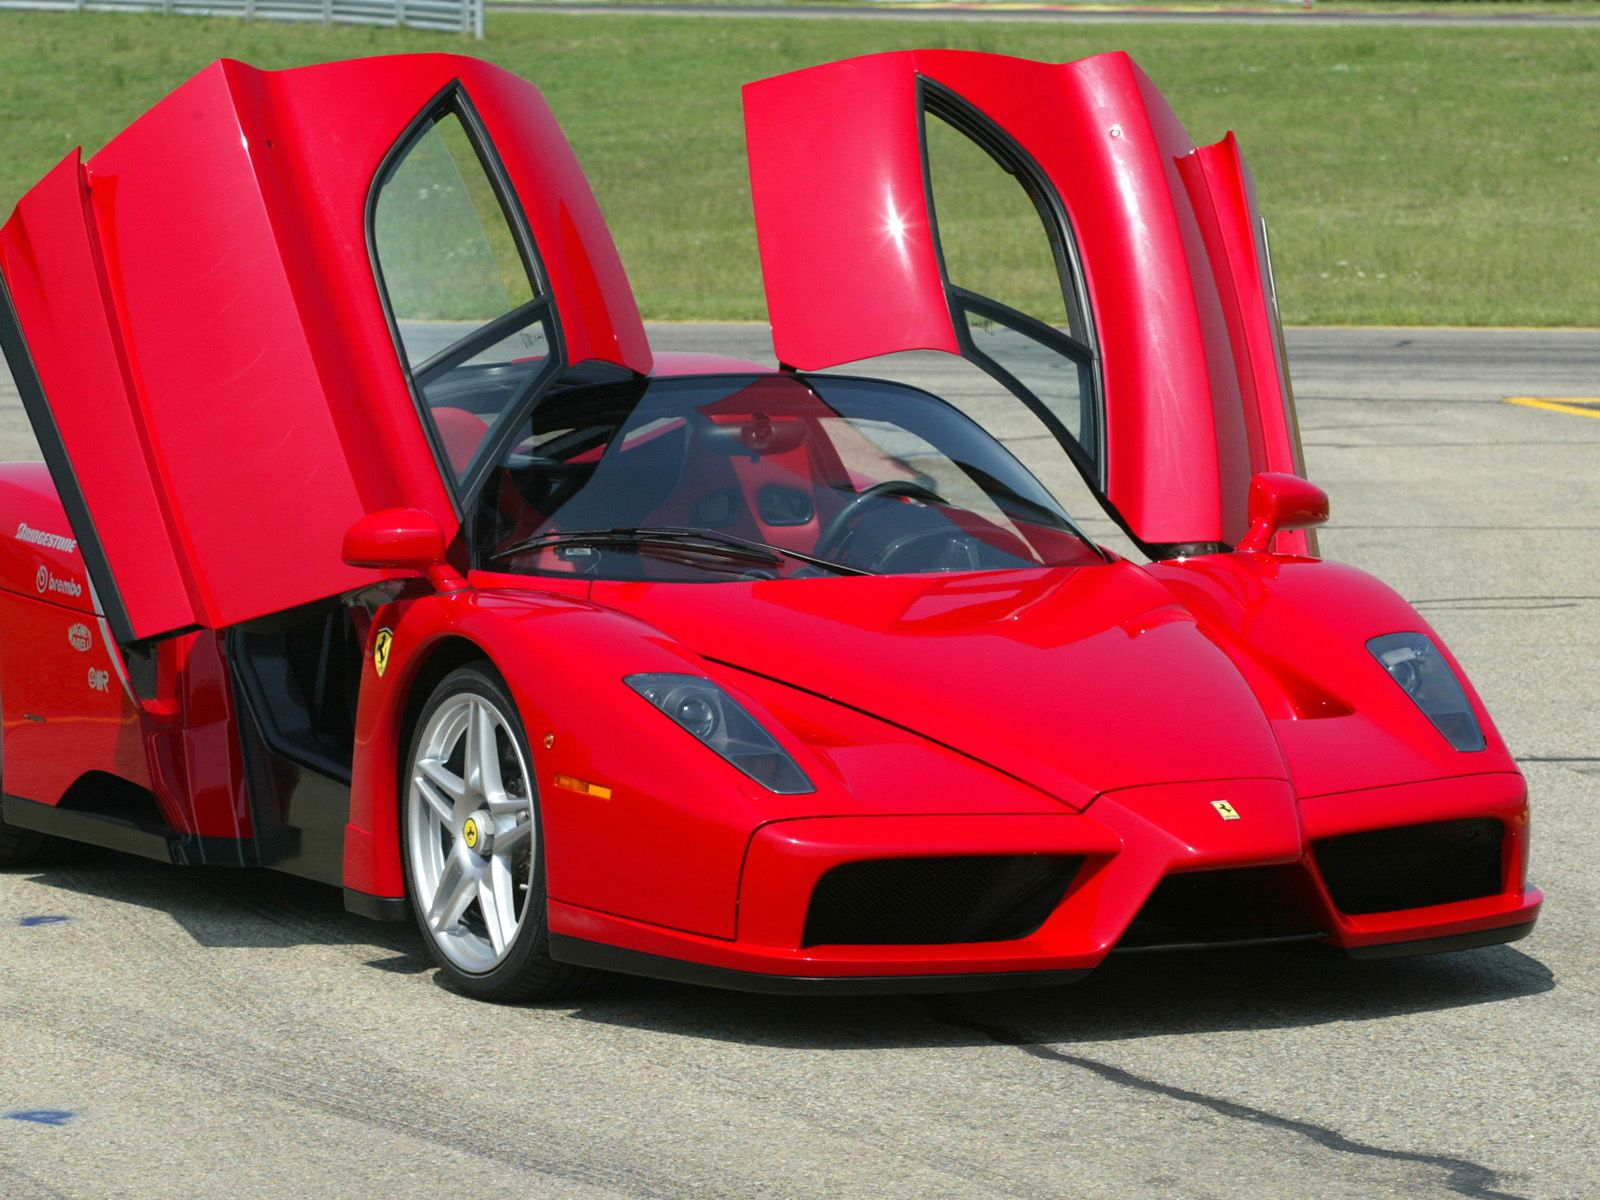 Ferrari Enzo 028 World Cars Free Download Image Of